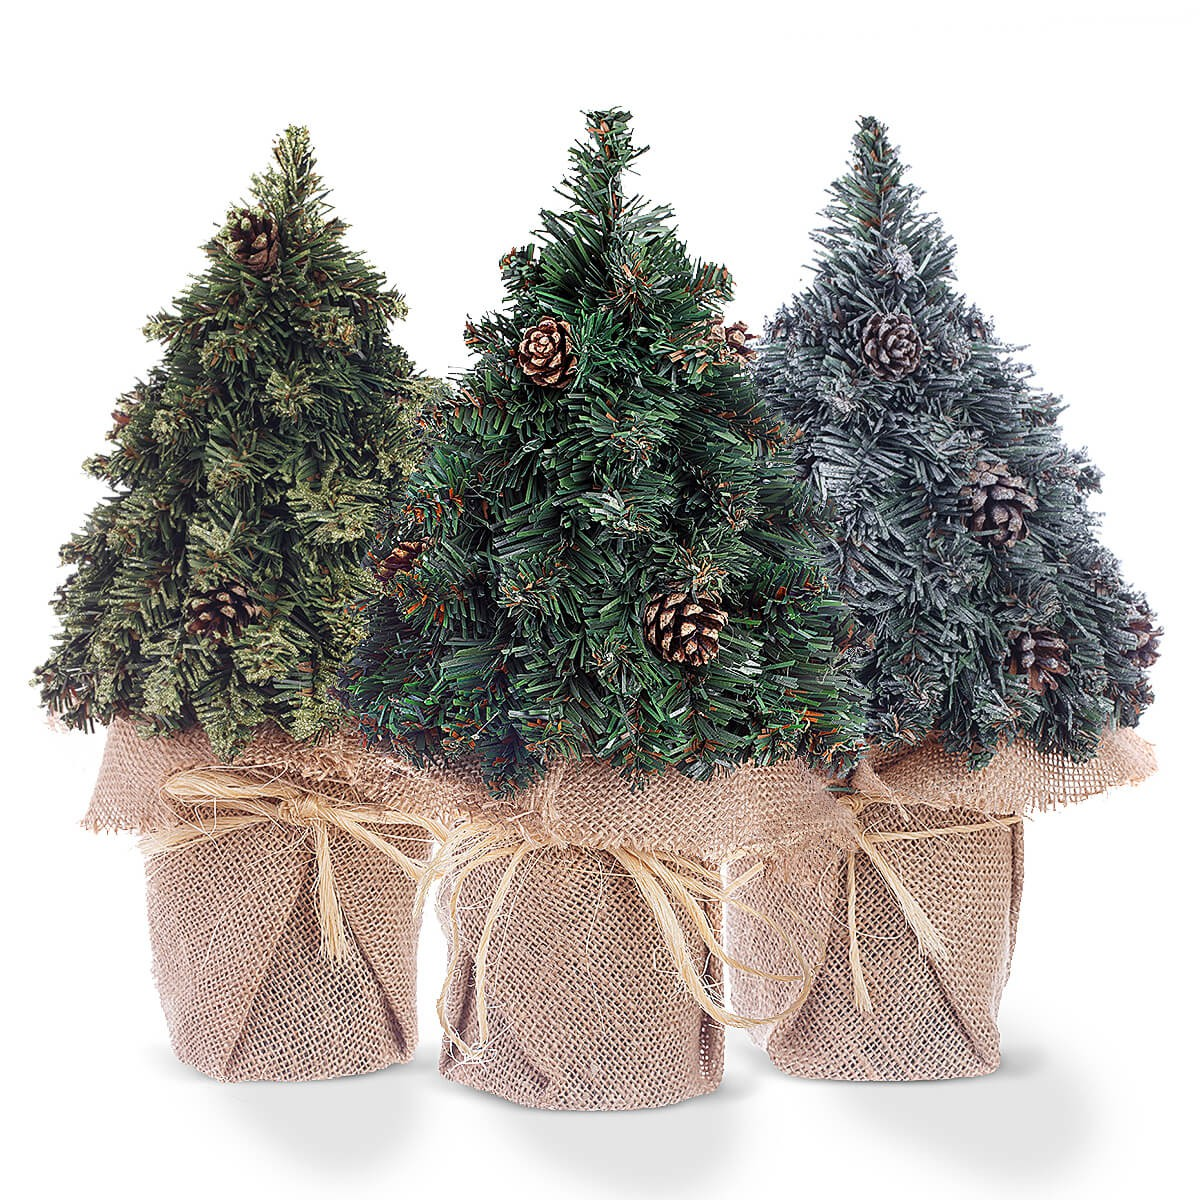 mini weihnachtsbaum 35cm k nstlich weihnachtsbaum mini mini weihnachtsbaum k nstlicher. Black Bedroom Furniture Sets. Home Design Ideas